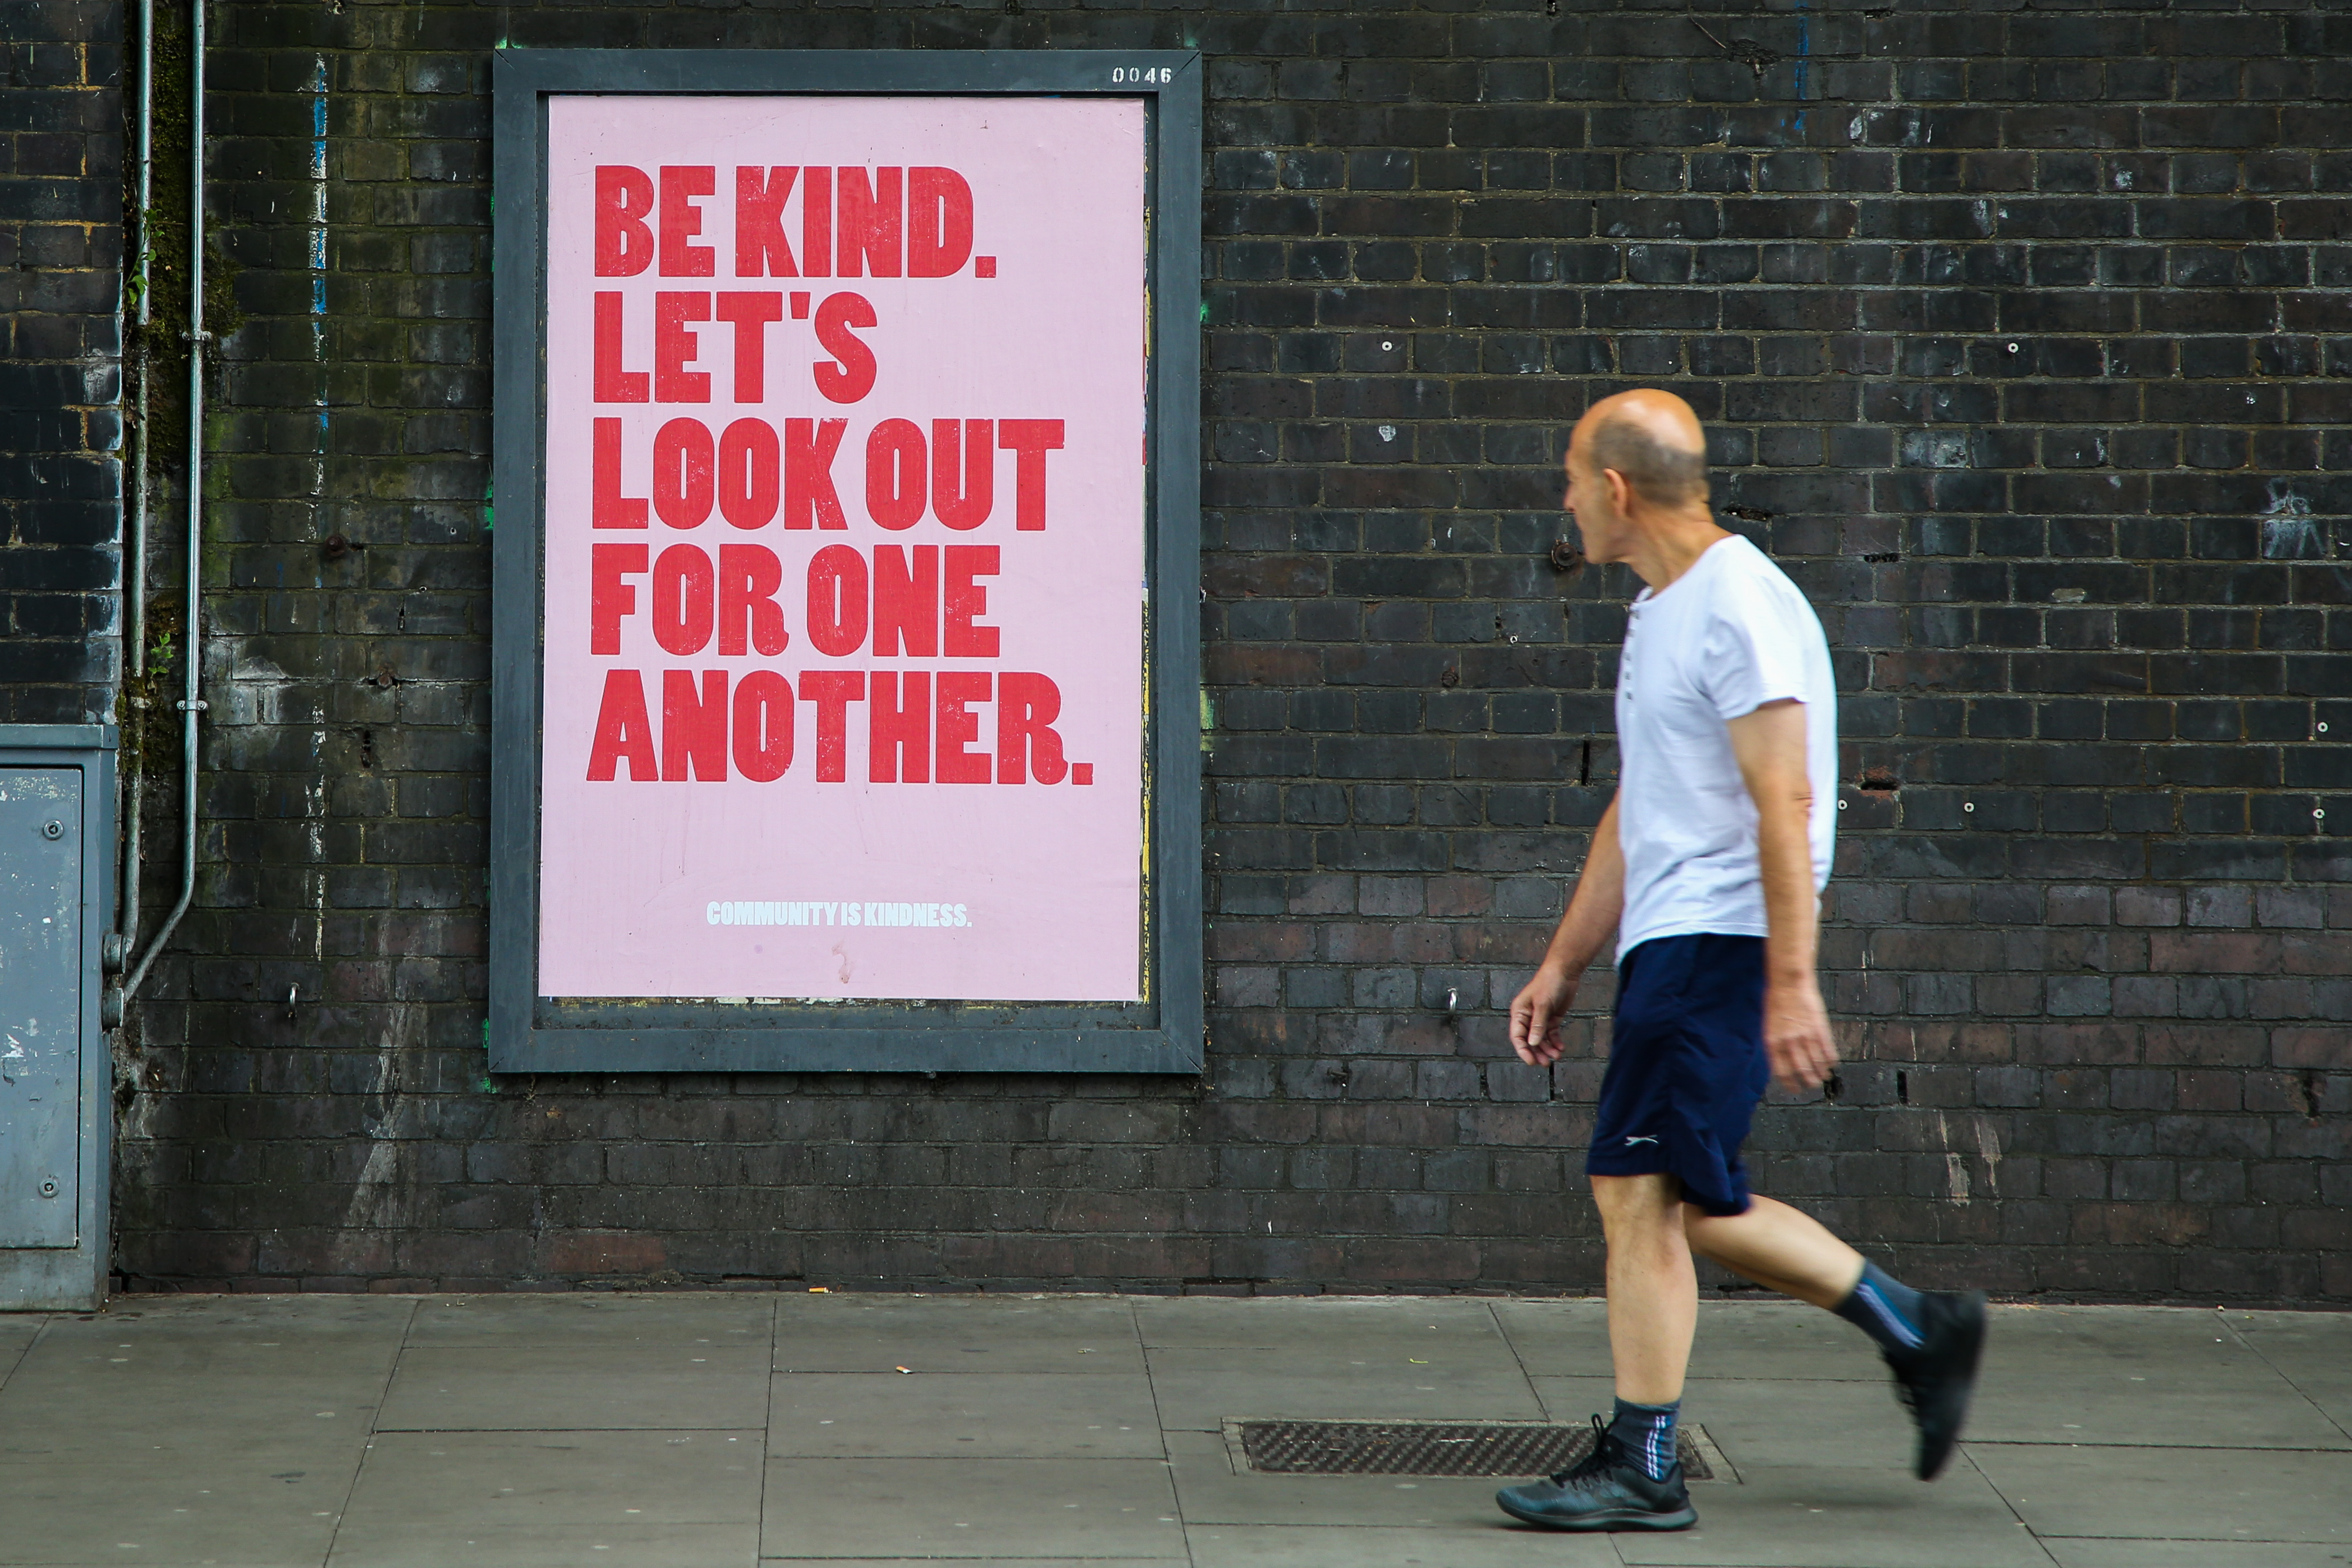 A man walks past a Be kind. Let's look out for one another poster in London. (Photo by Dinendra Haria / SOPA Images/Sipa USA)